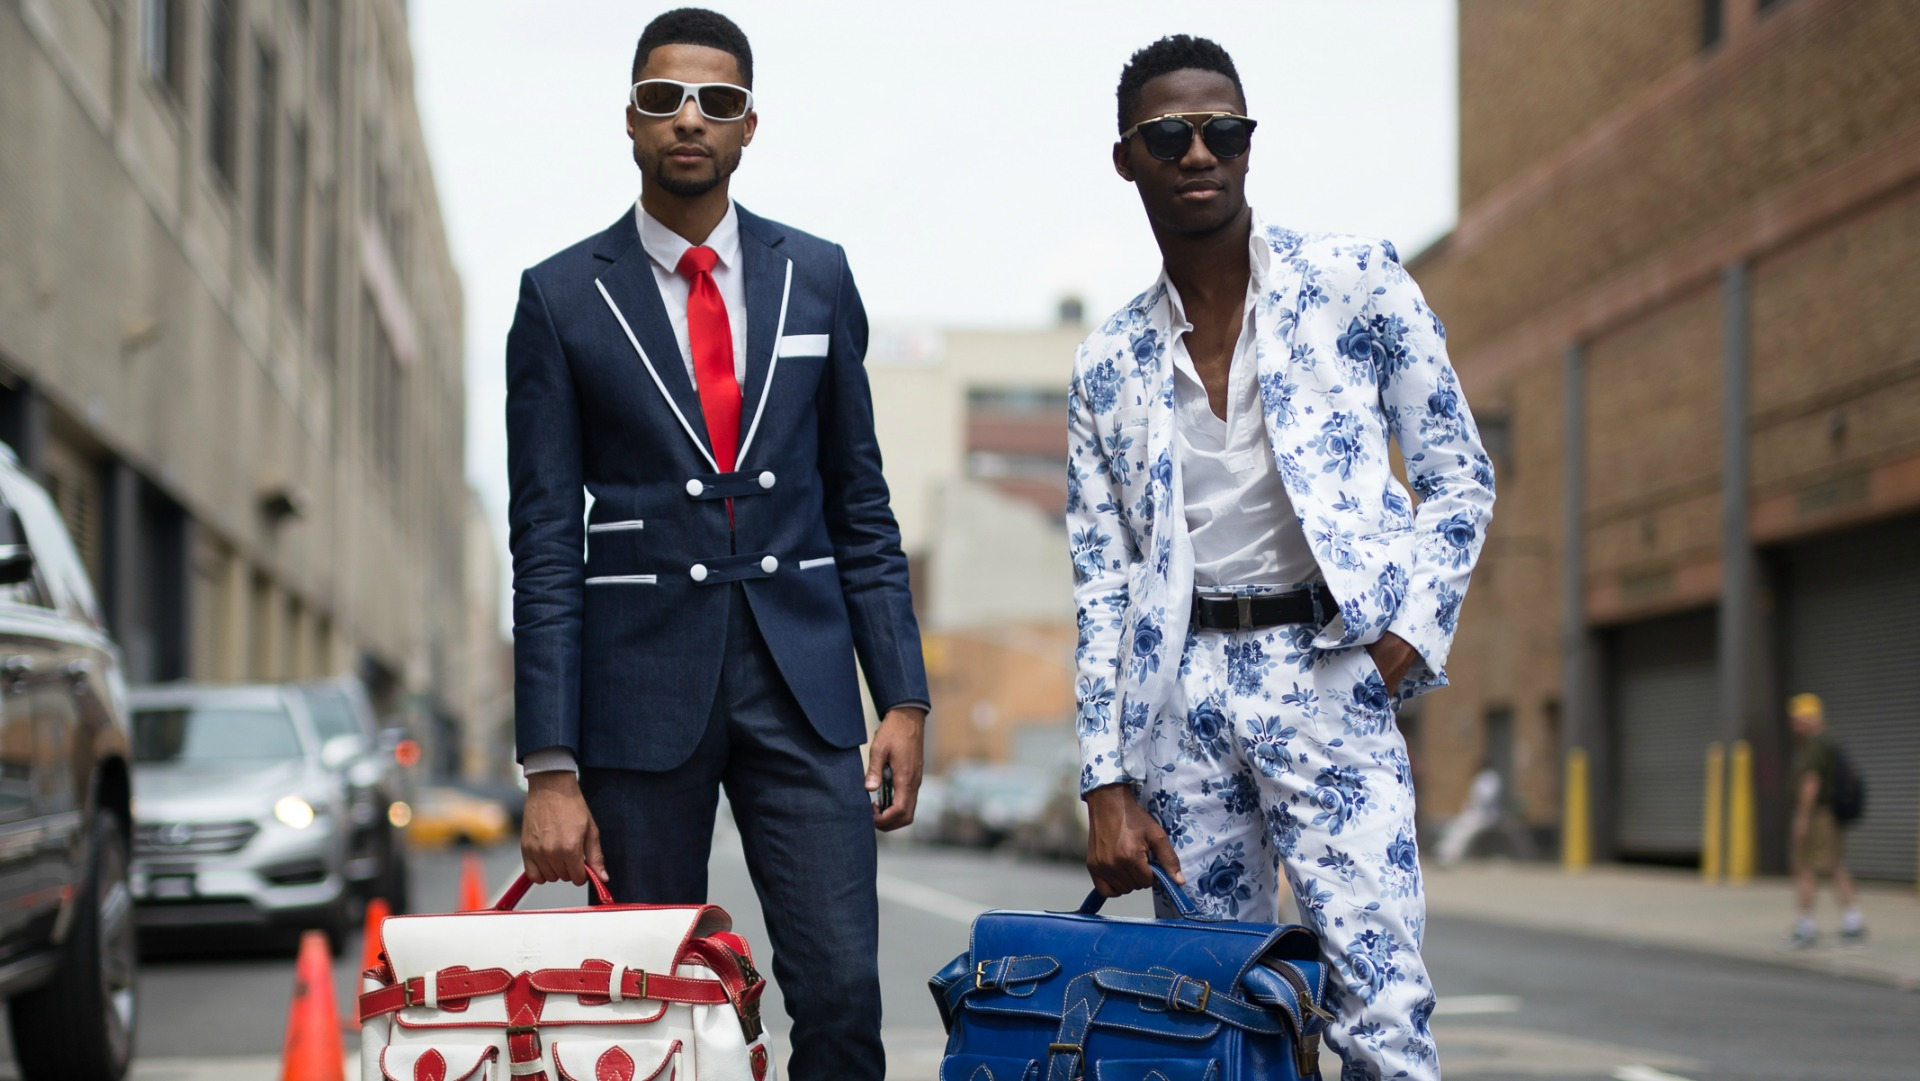 Street Style for Men Is Full of Fashion Inspiration for Us All